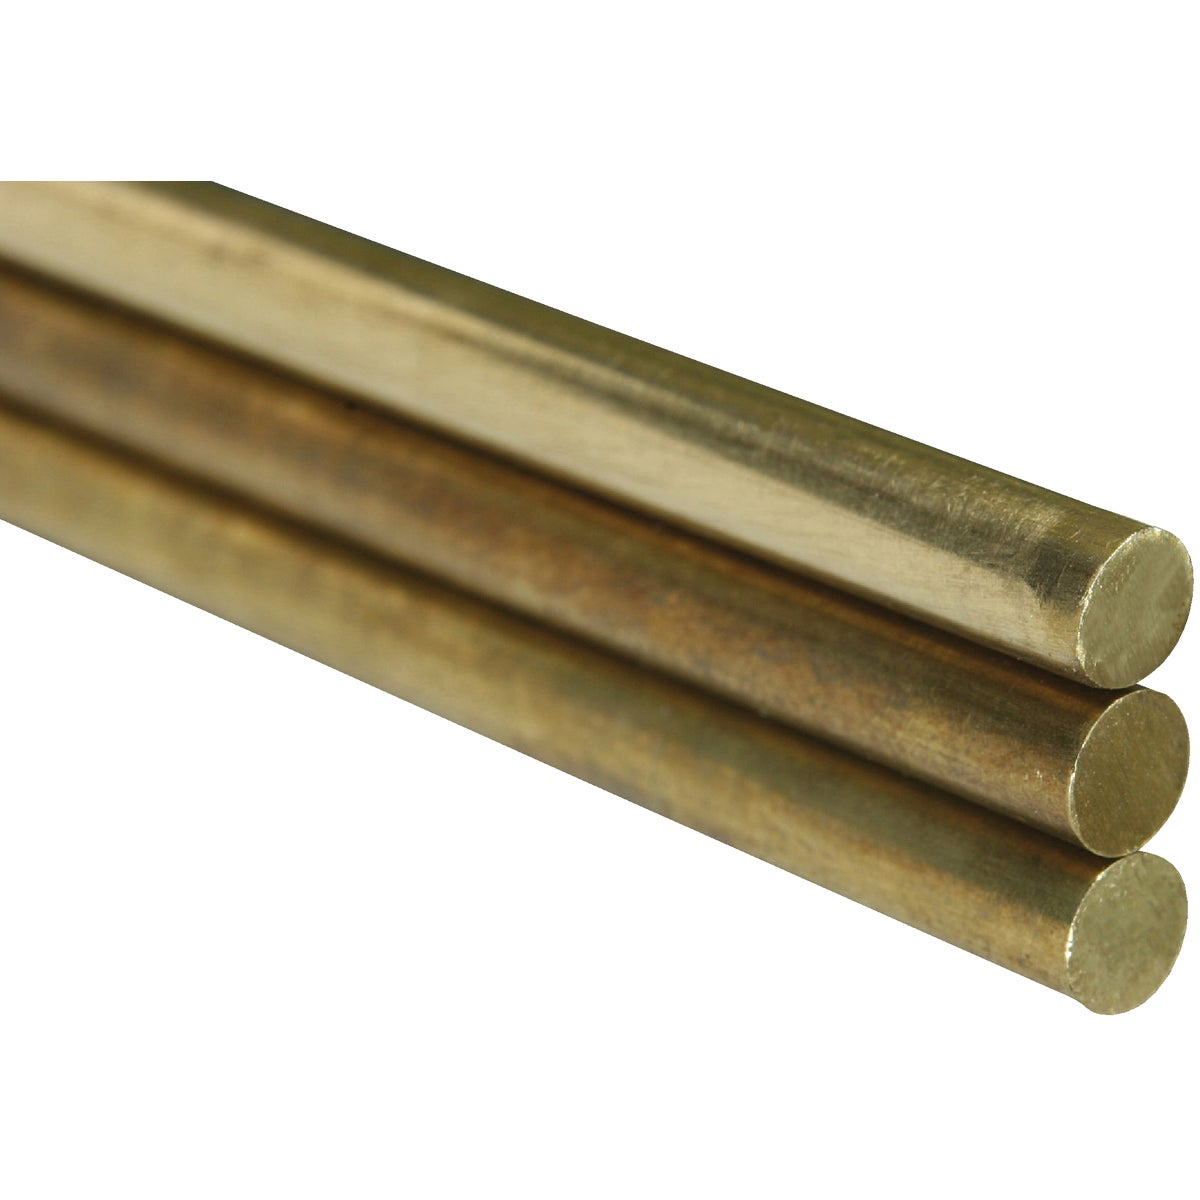 K & S Engineering 3/8X36 SOLID BRASS ROD 1167